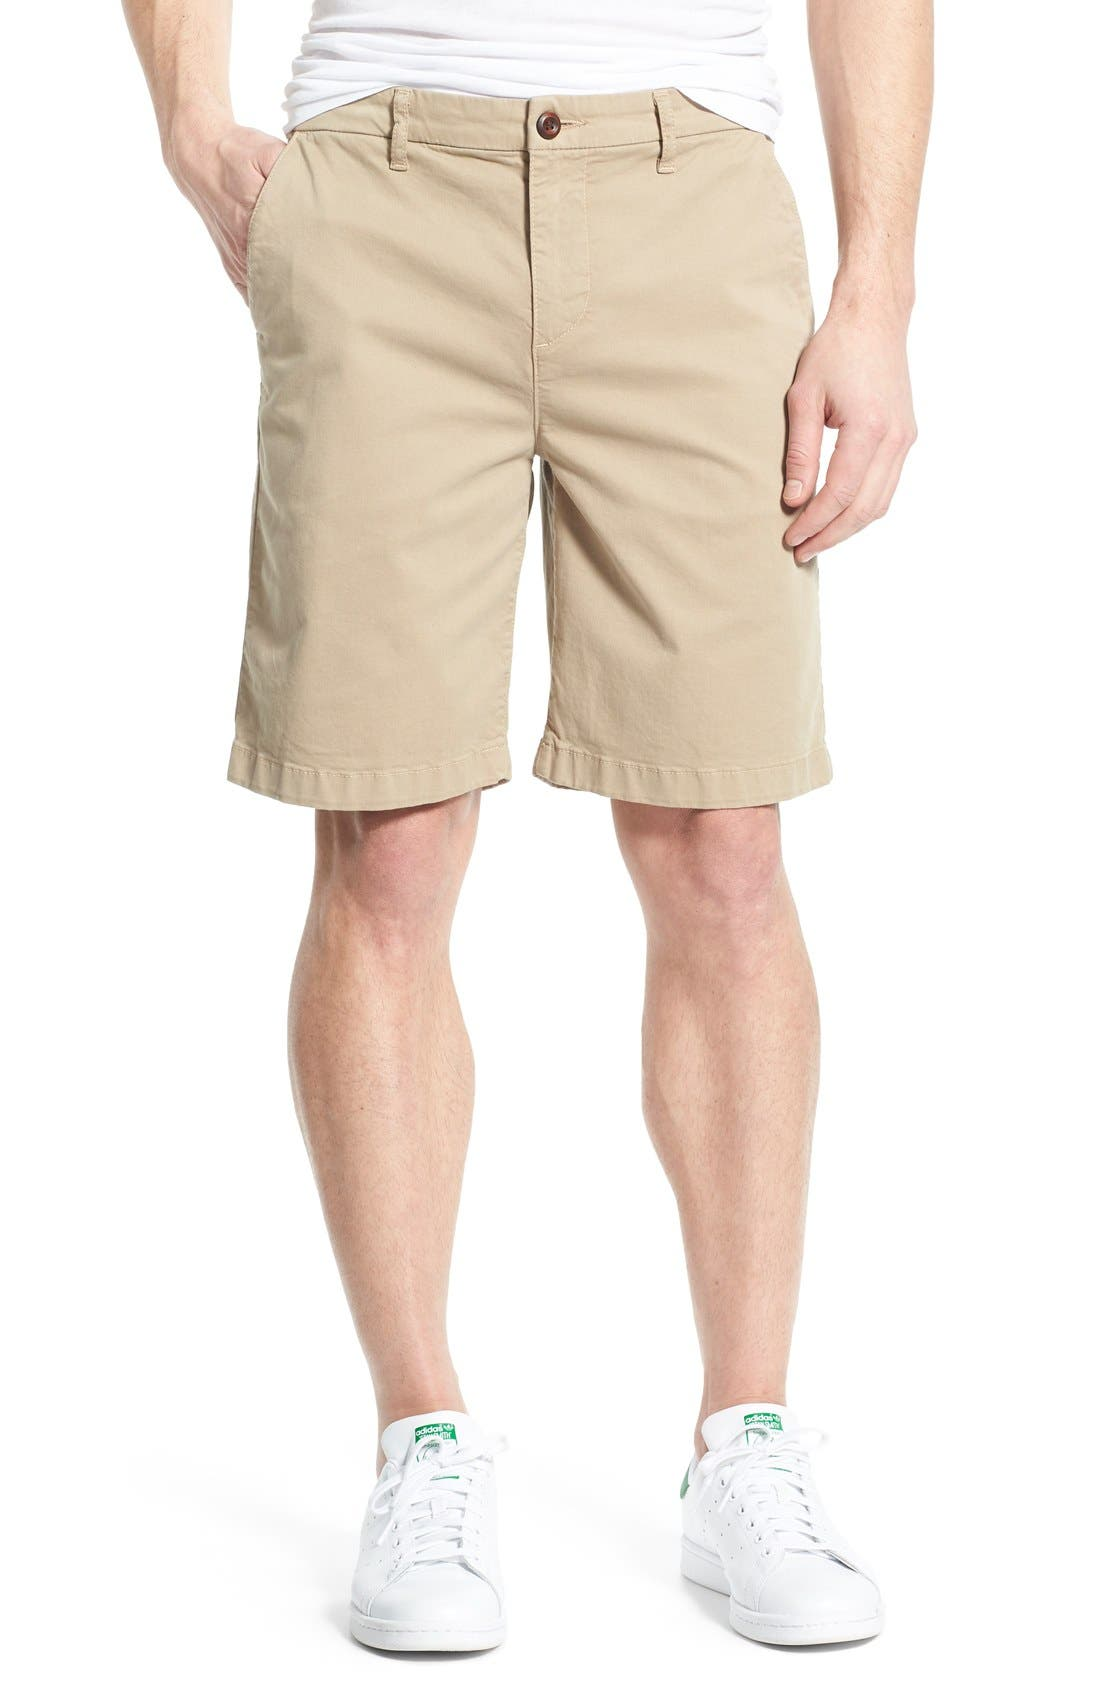 'Thompson' Slim Fit Shorts,                             Main thumbnail 1, color,                             240